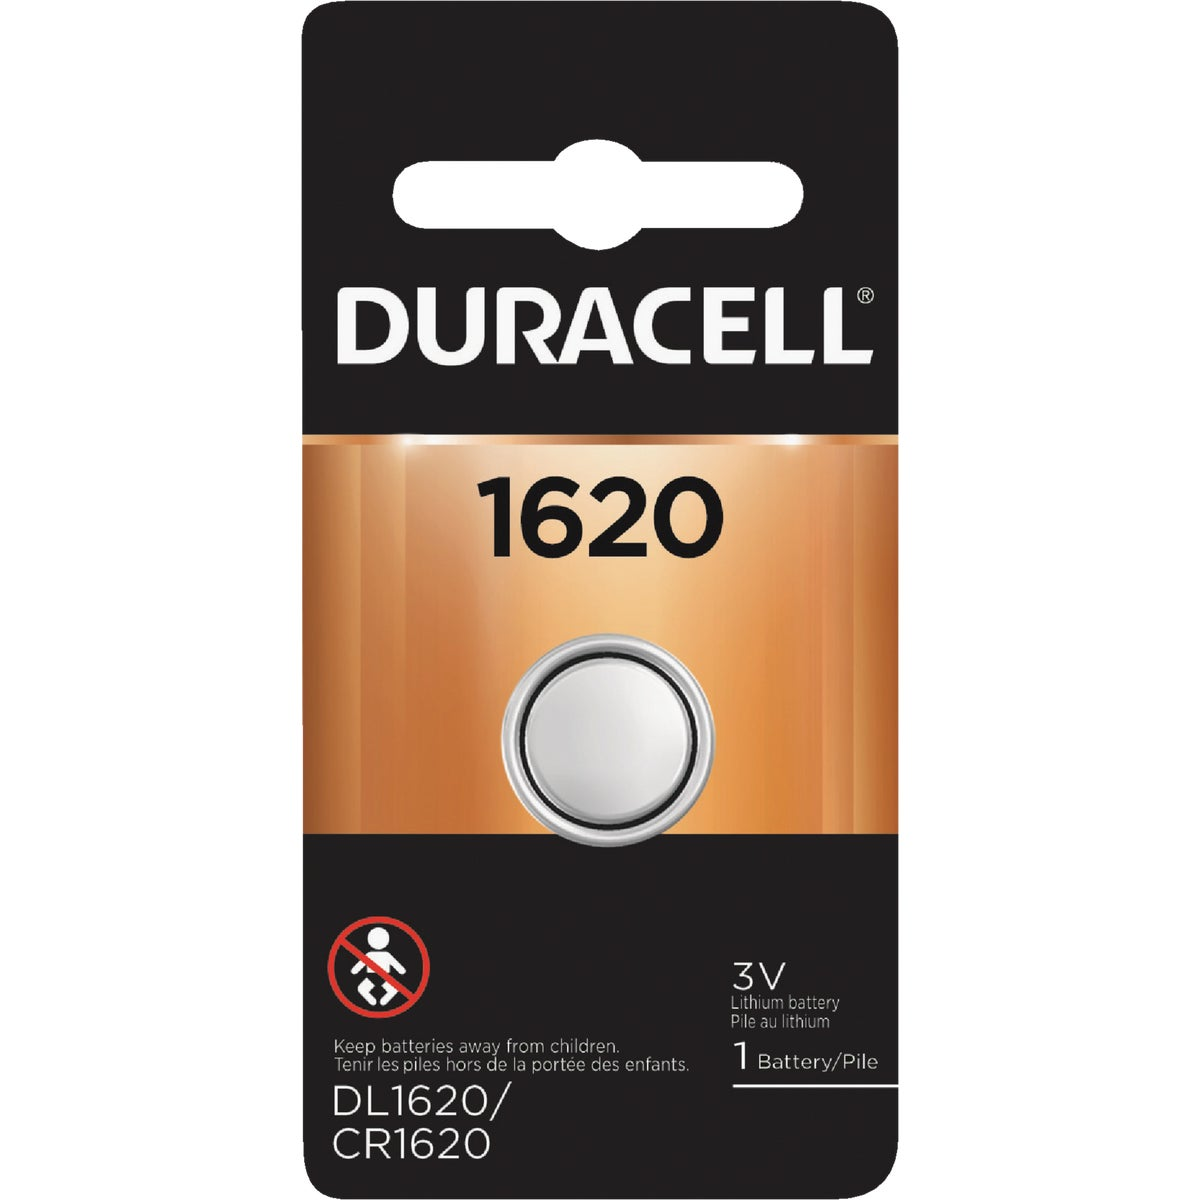 P & G/ Duracell 43687 3V Security Battery at Sears.com